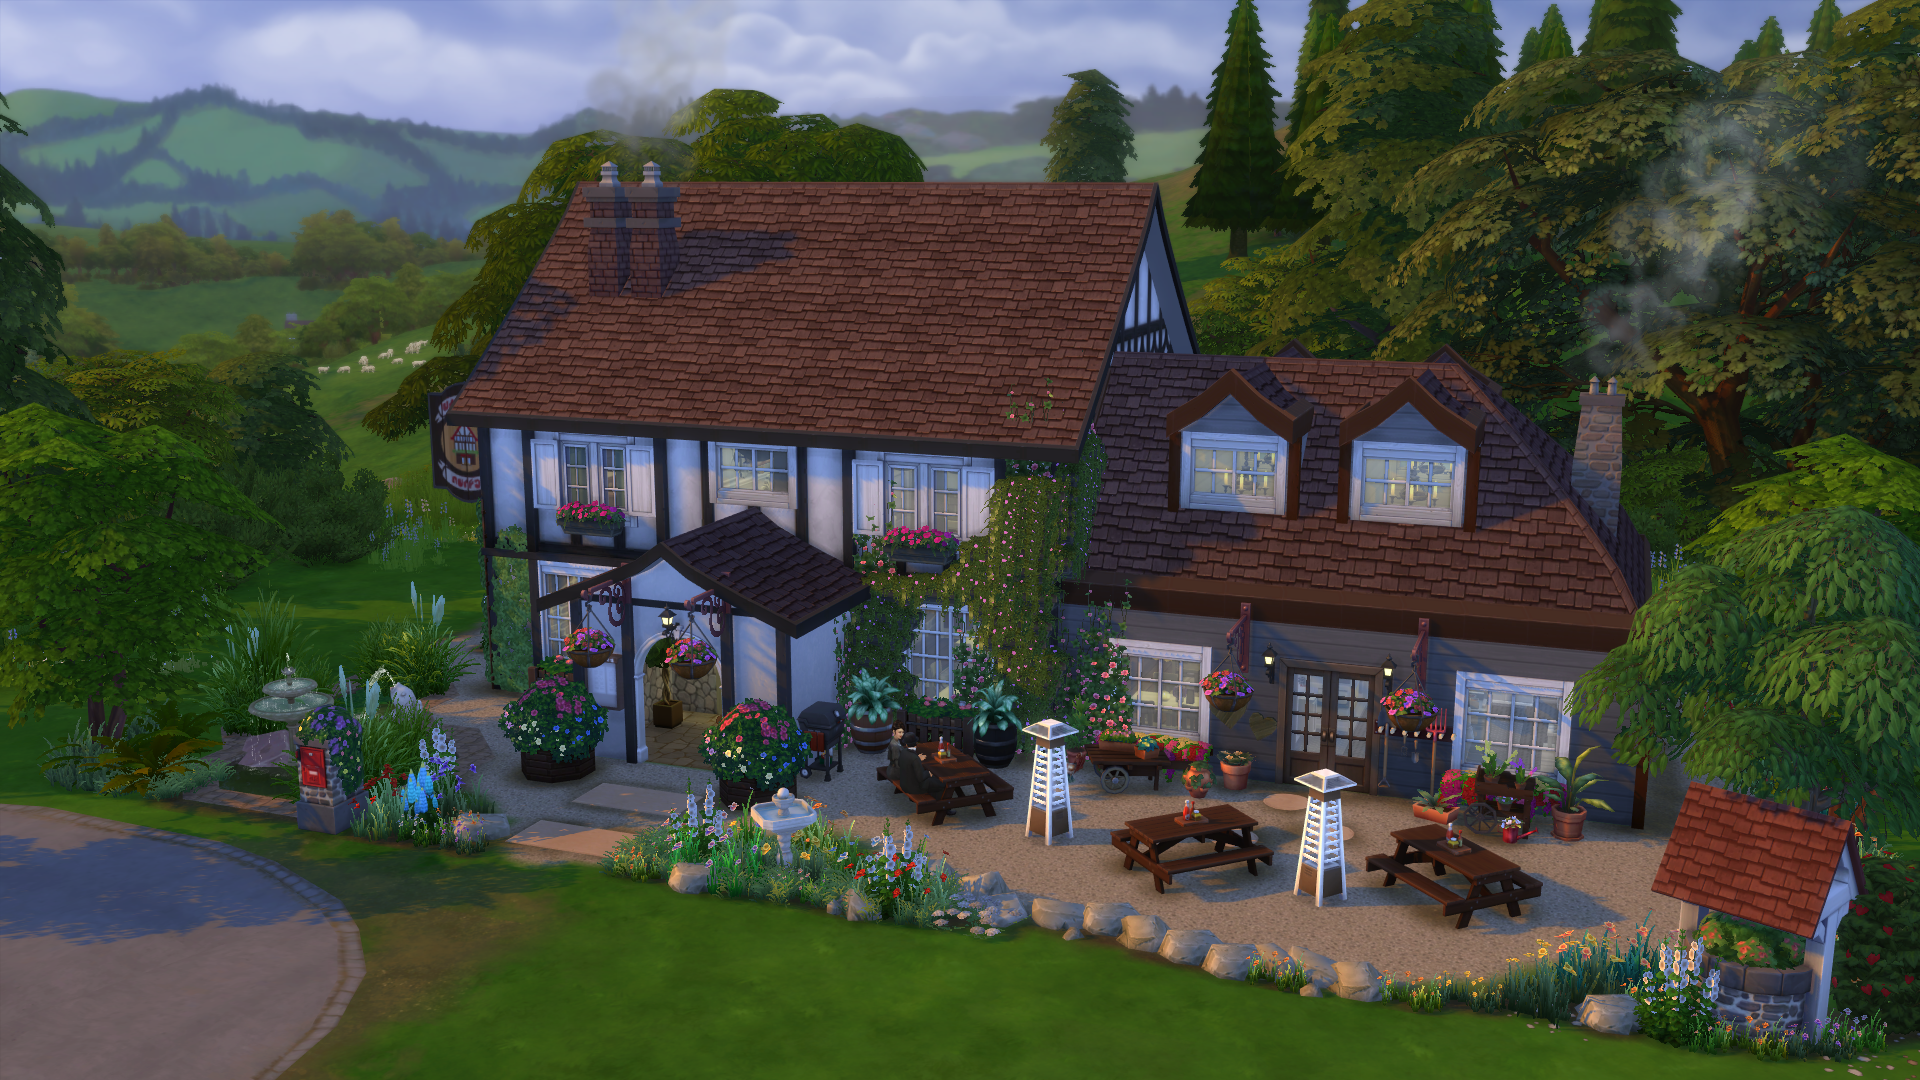 The sims 4 dine out building ideas simsvip for House build ideas